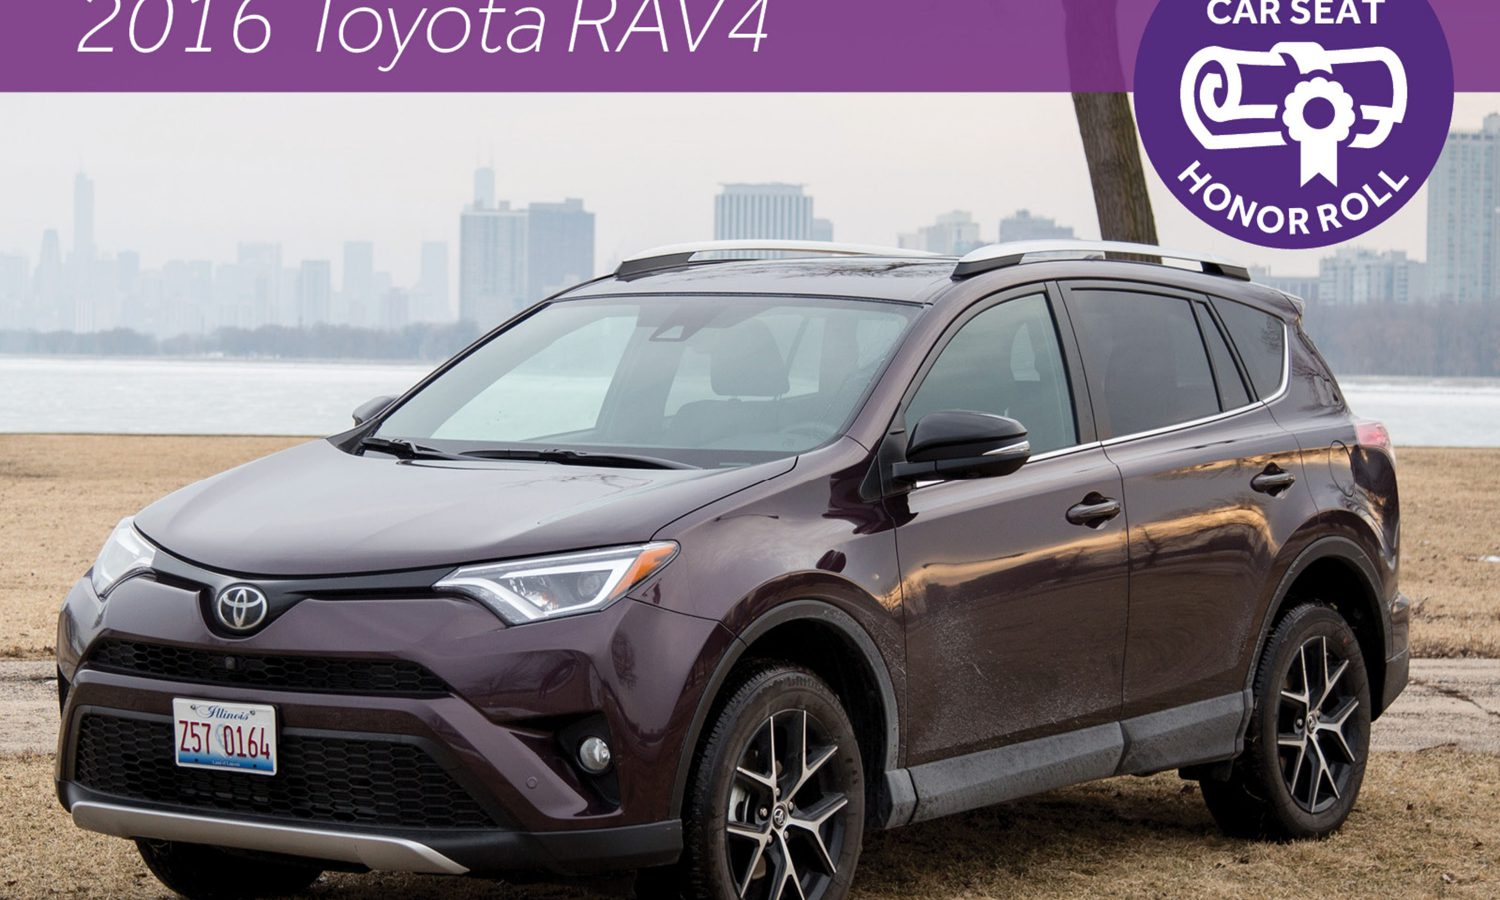 Rav4 Top Of The Class For Car Seat Installation According To Cars Com Toyota Usa Newsroom